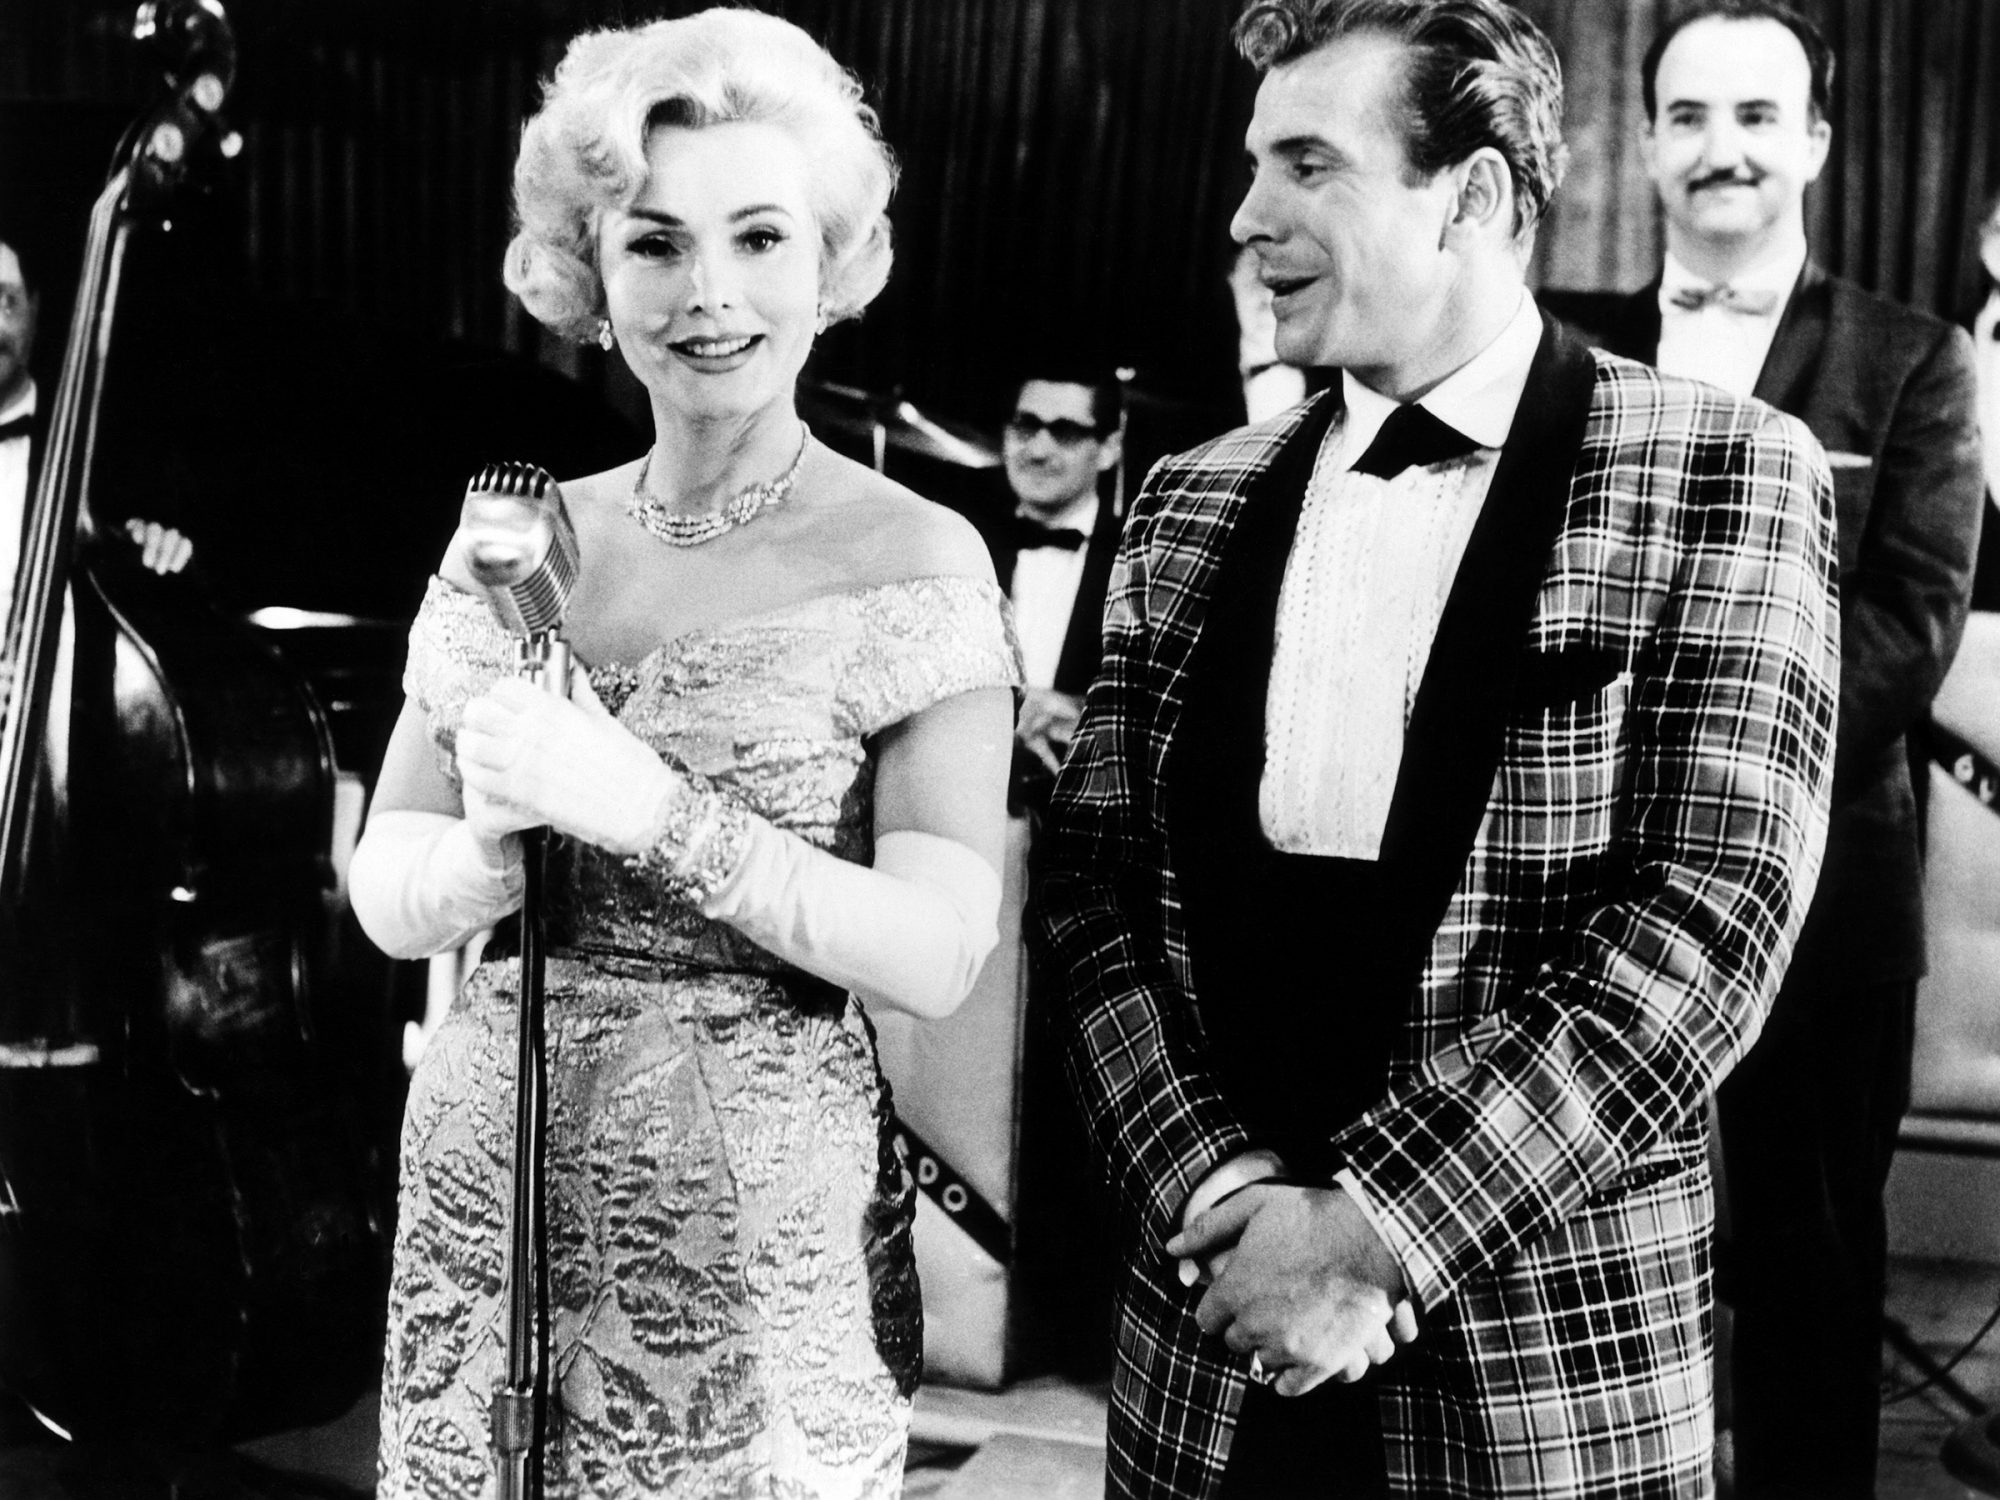 COUNTRY MUSIC HOLIDAY, Zsa Zsa Gabor, Ferlin Husky, 1958